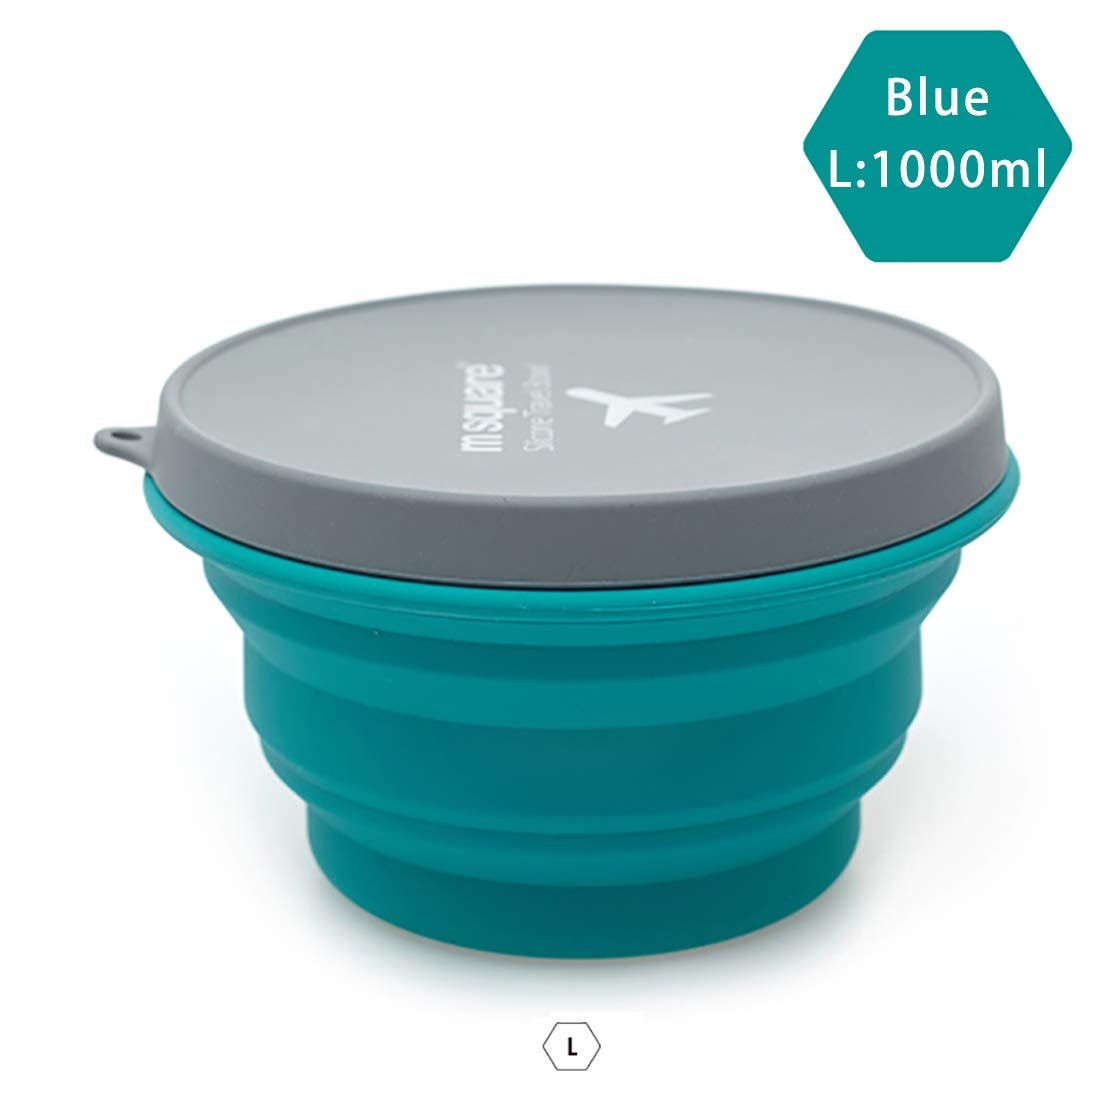 M square Collapsible Food Grade Silicone Bowls with Lids, BPA-Free, Camping, Traveling, Pets, Hiking, Backpacking Bowl (34.16oz Blue)